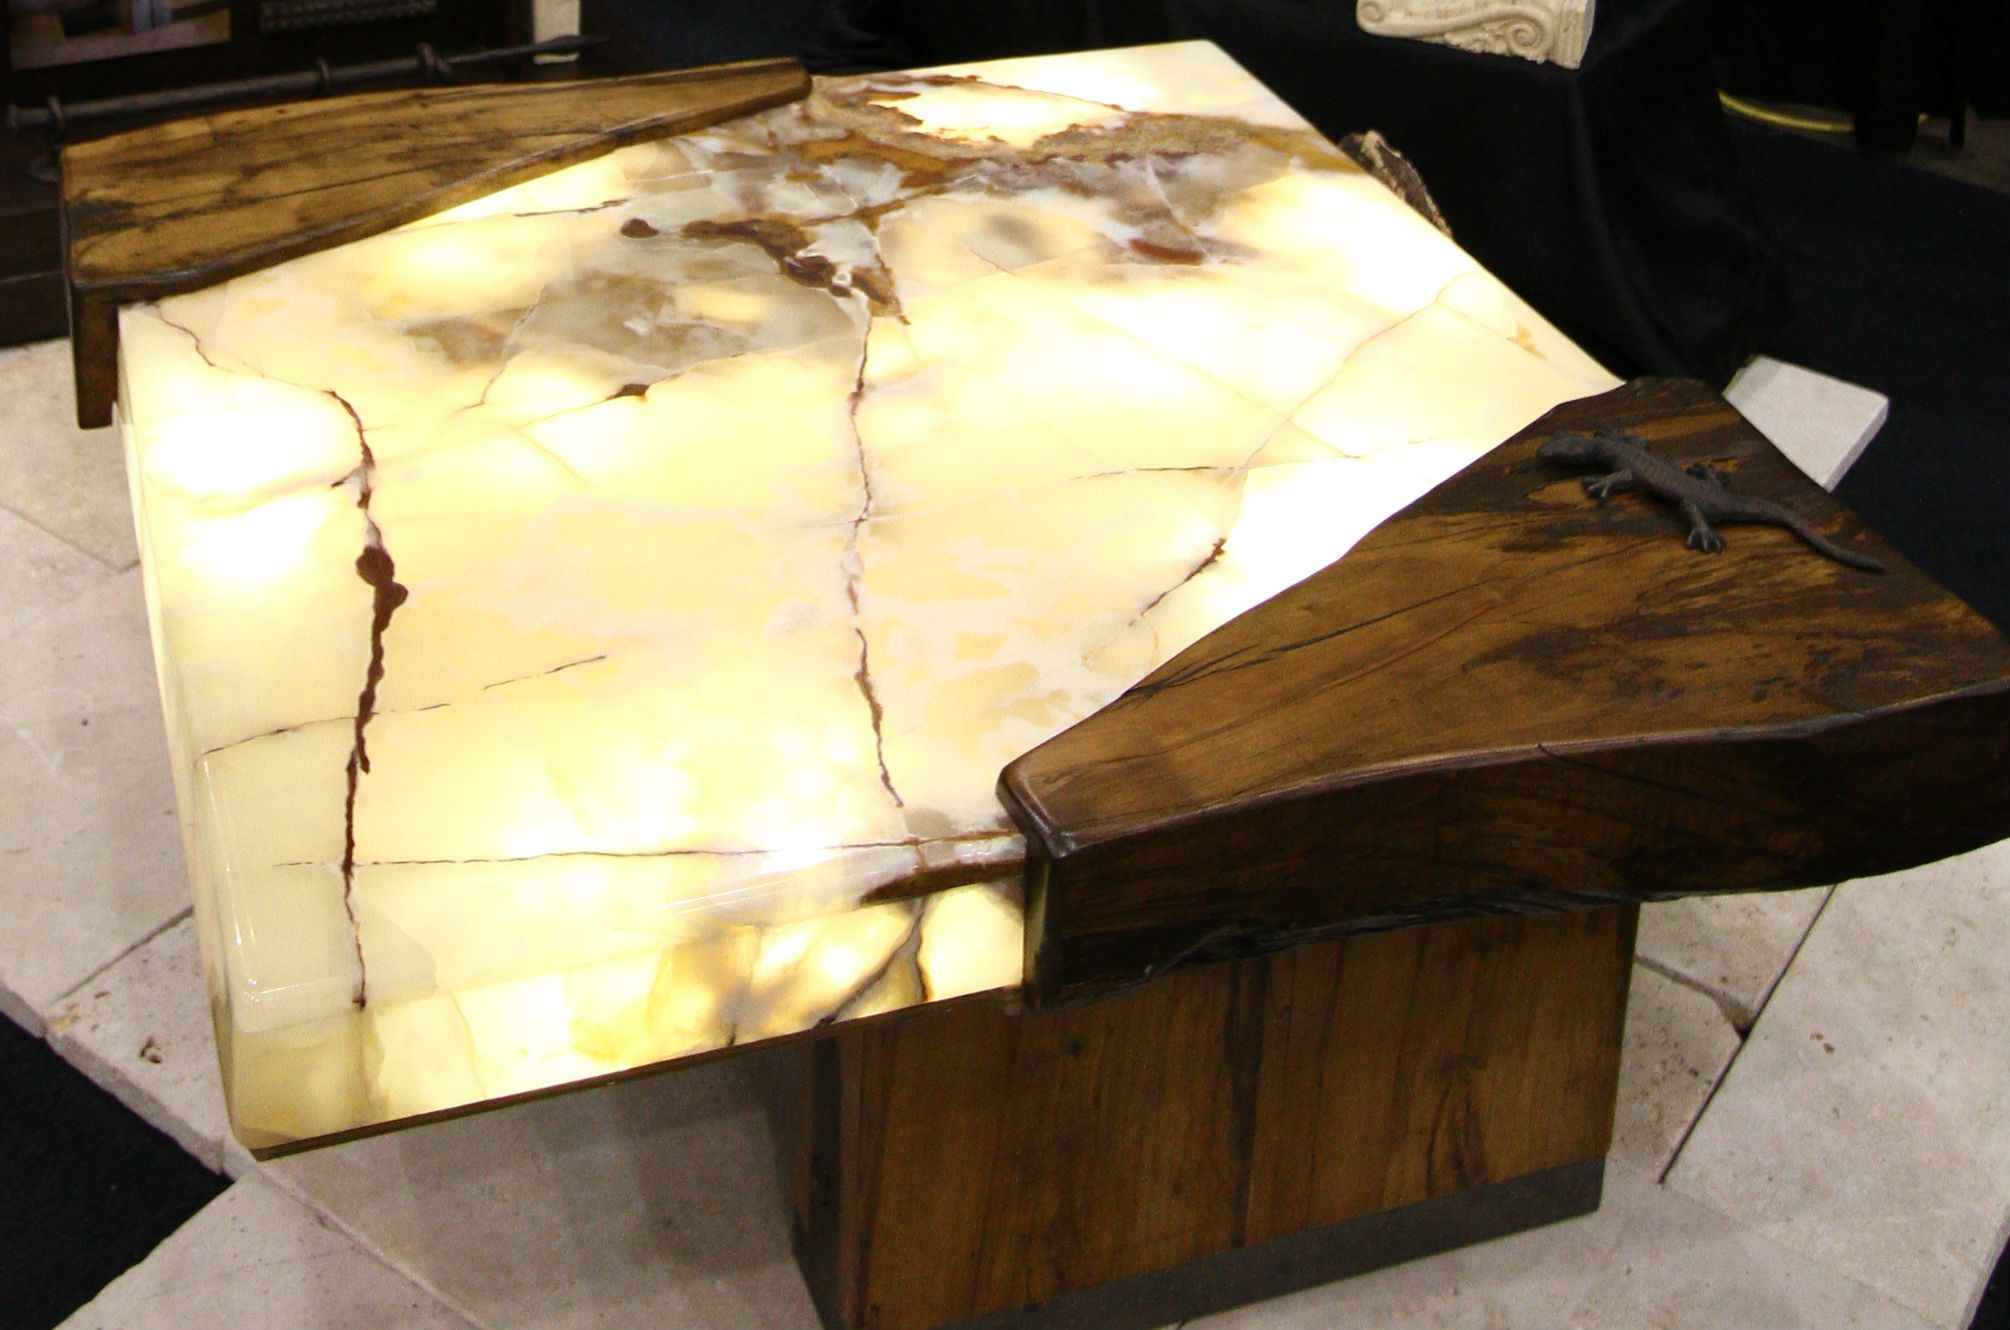 Architectural Justice Created This Unique Coffee Table Out Of Reclaimed Wood And Onyx The Table Is Lit F Onyx Table Wood Table Living Room Coffee Table White